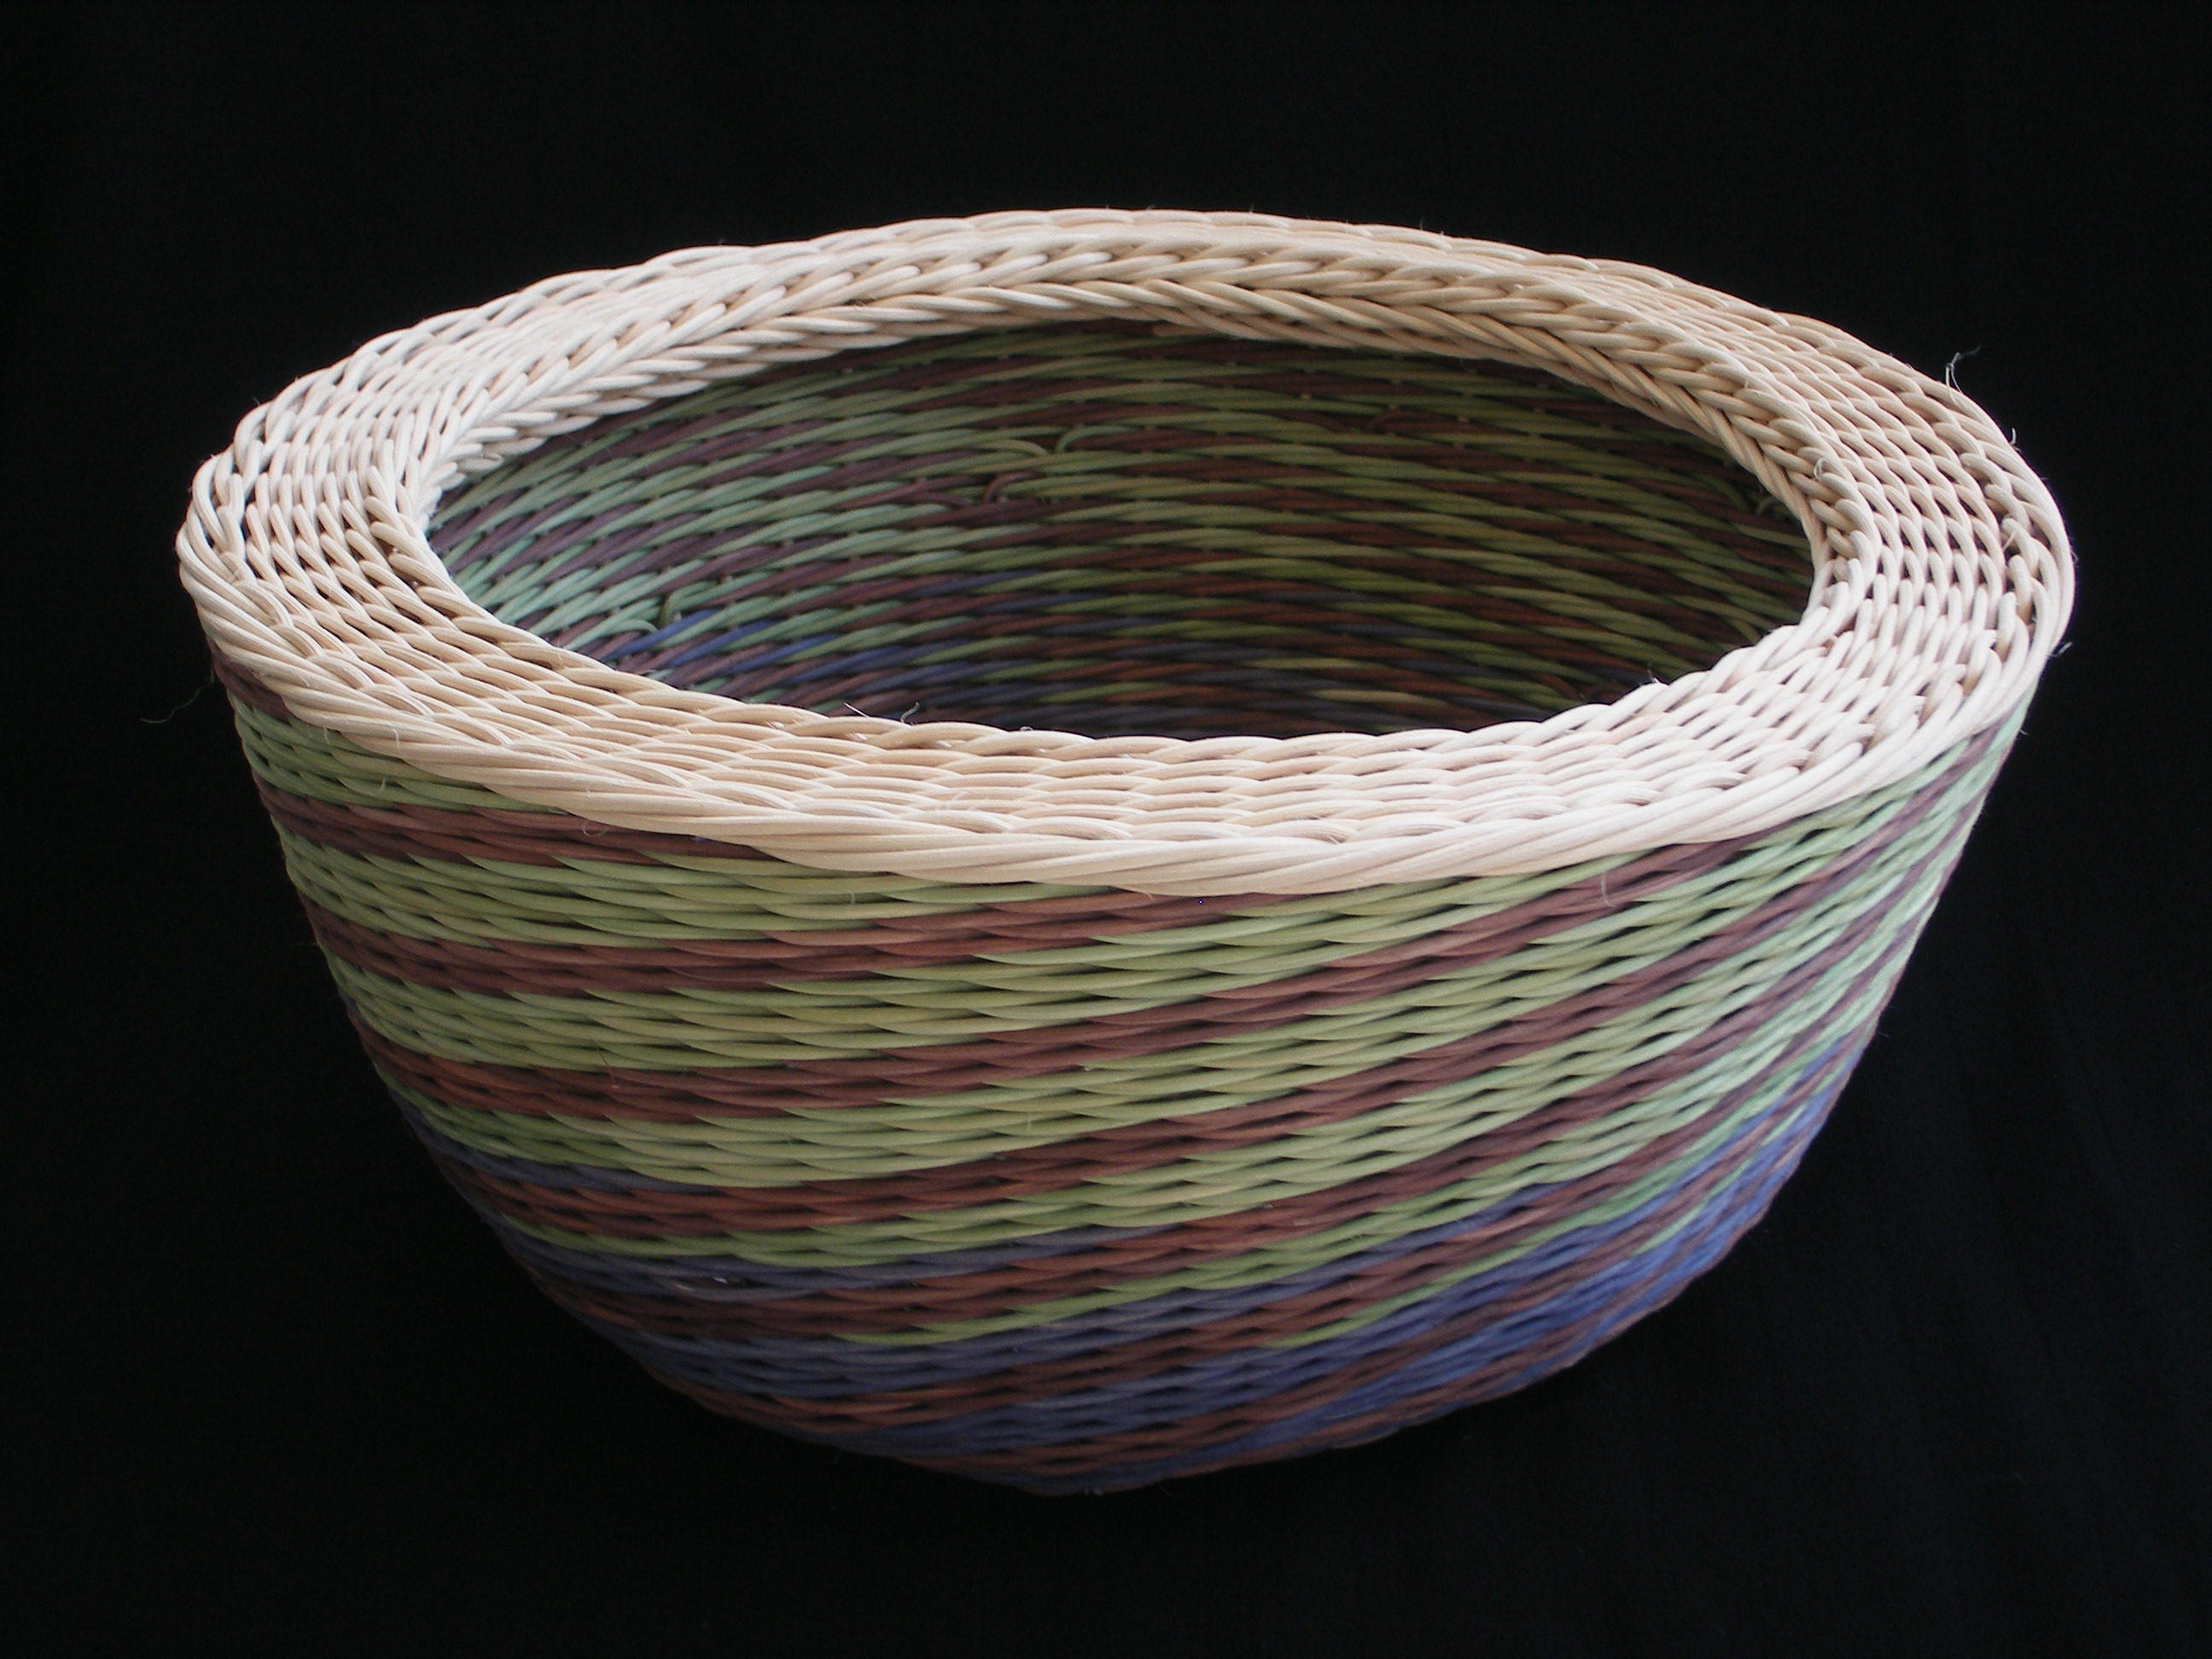 002 green, blue, brown, natural wicker spiral